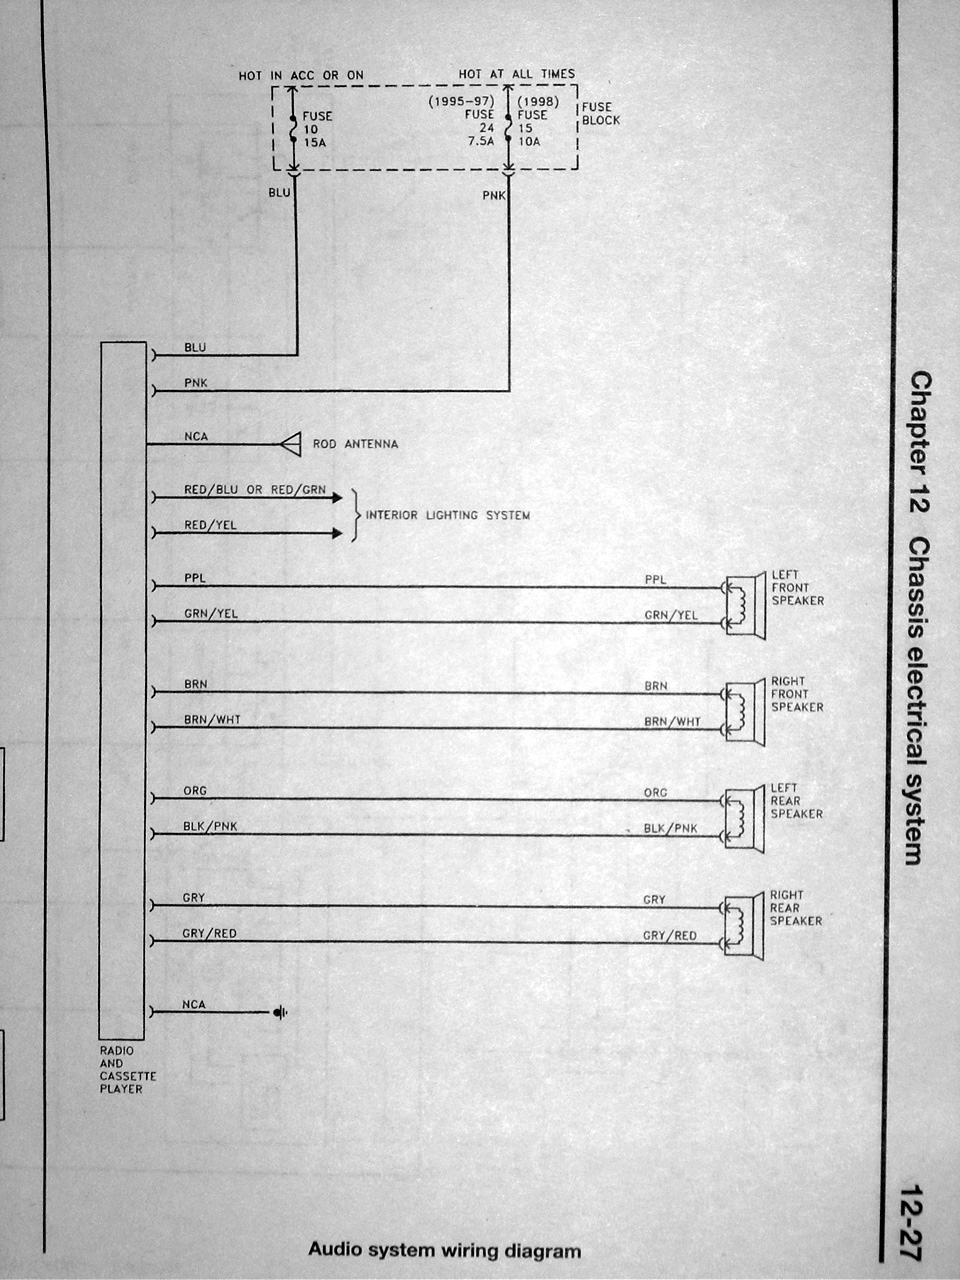 2009 Nissan Maxima Headlight Wiring Diagram Detailed Schematics 1998 K1500 Thread Useful Info Forum 2005